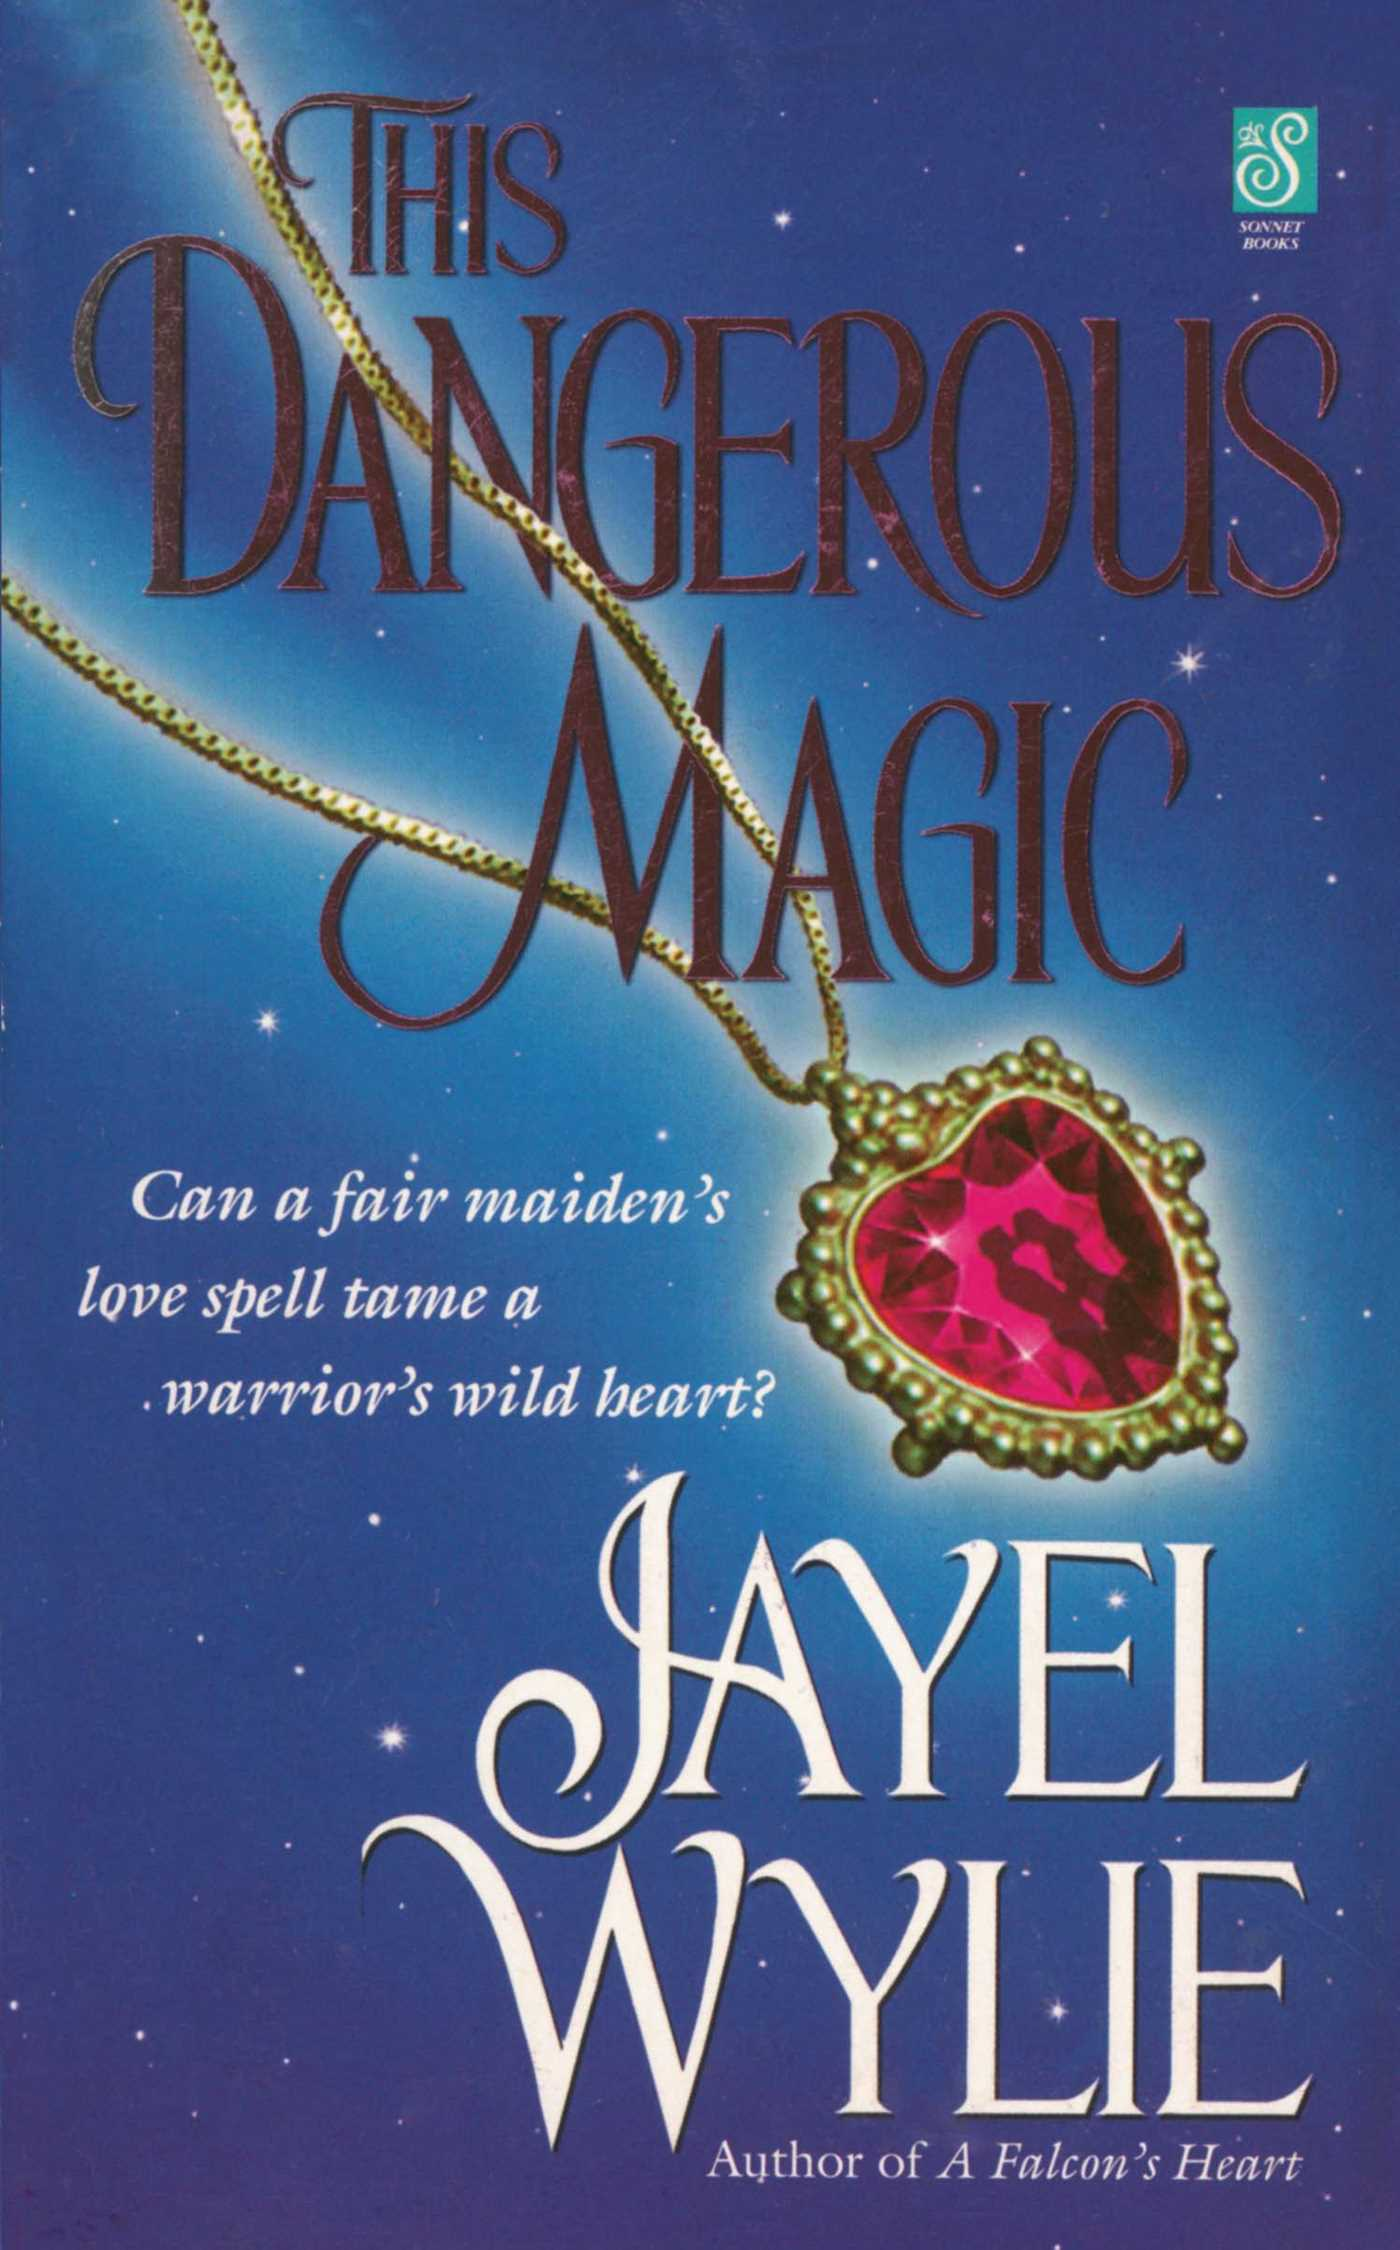 This Dangerous Magic   Book by Jayel Wylie   Official